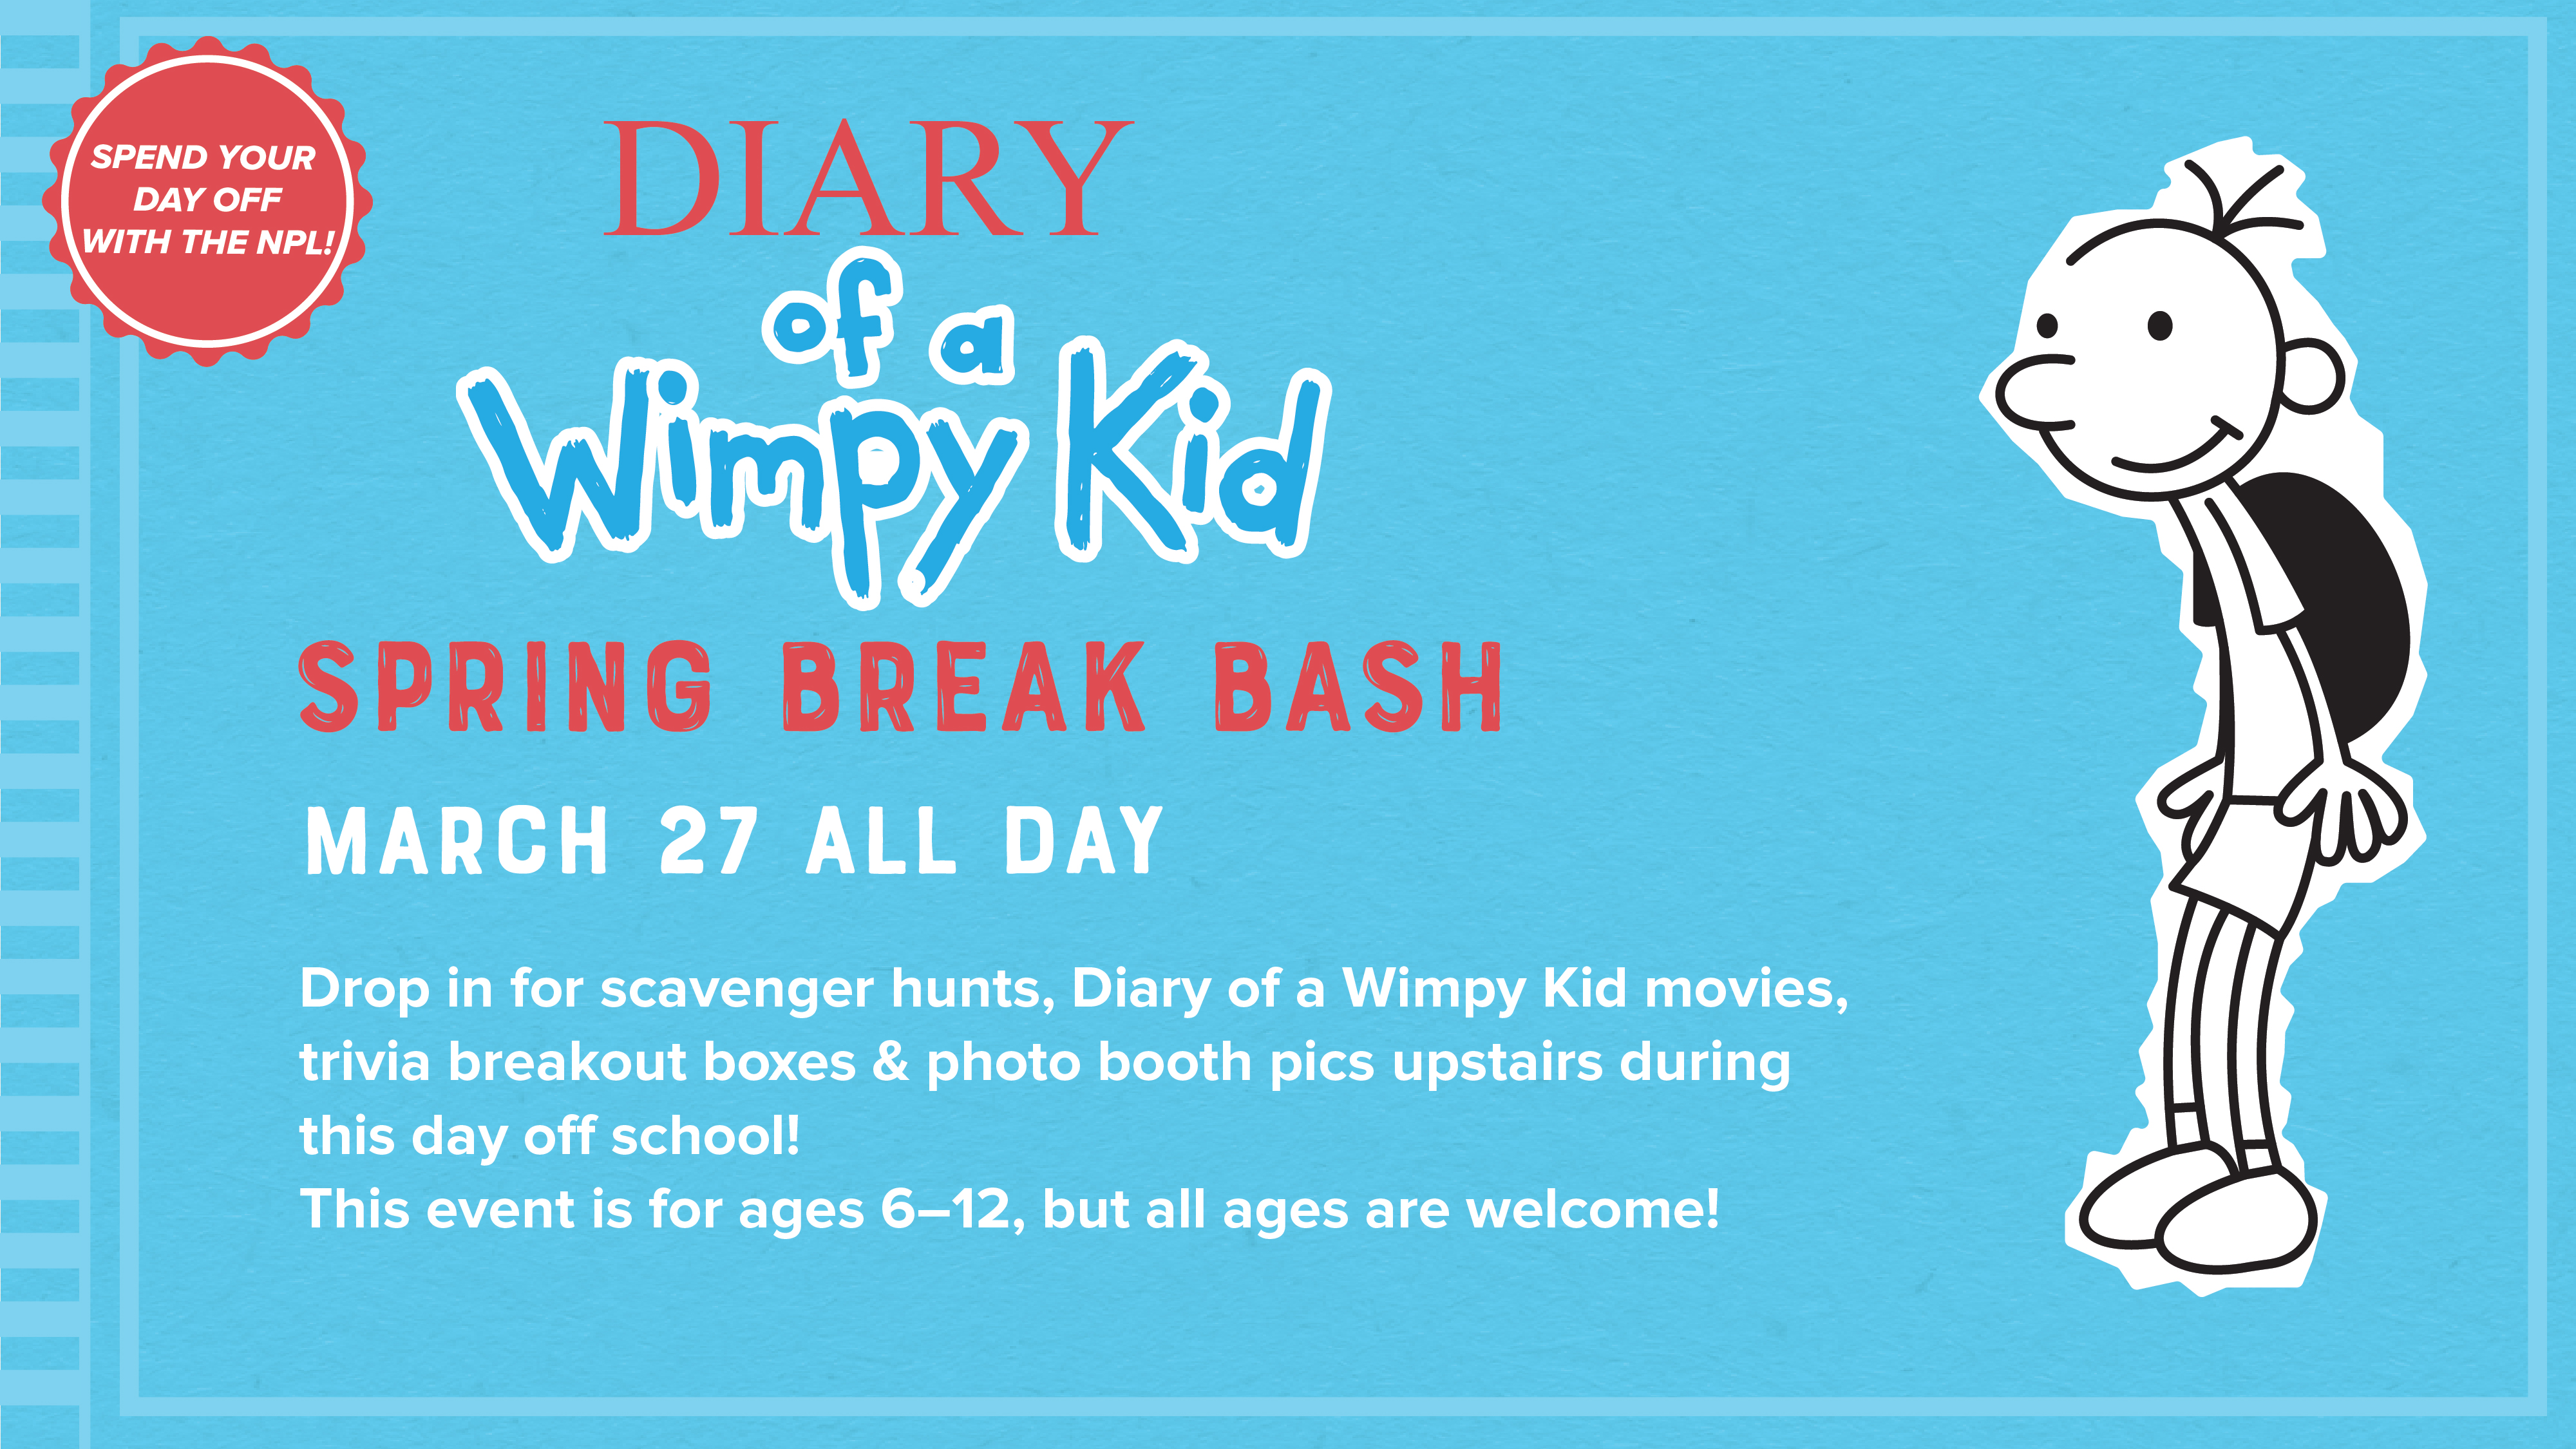 Diary of a Wimpy Kid: Spring Break Bash